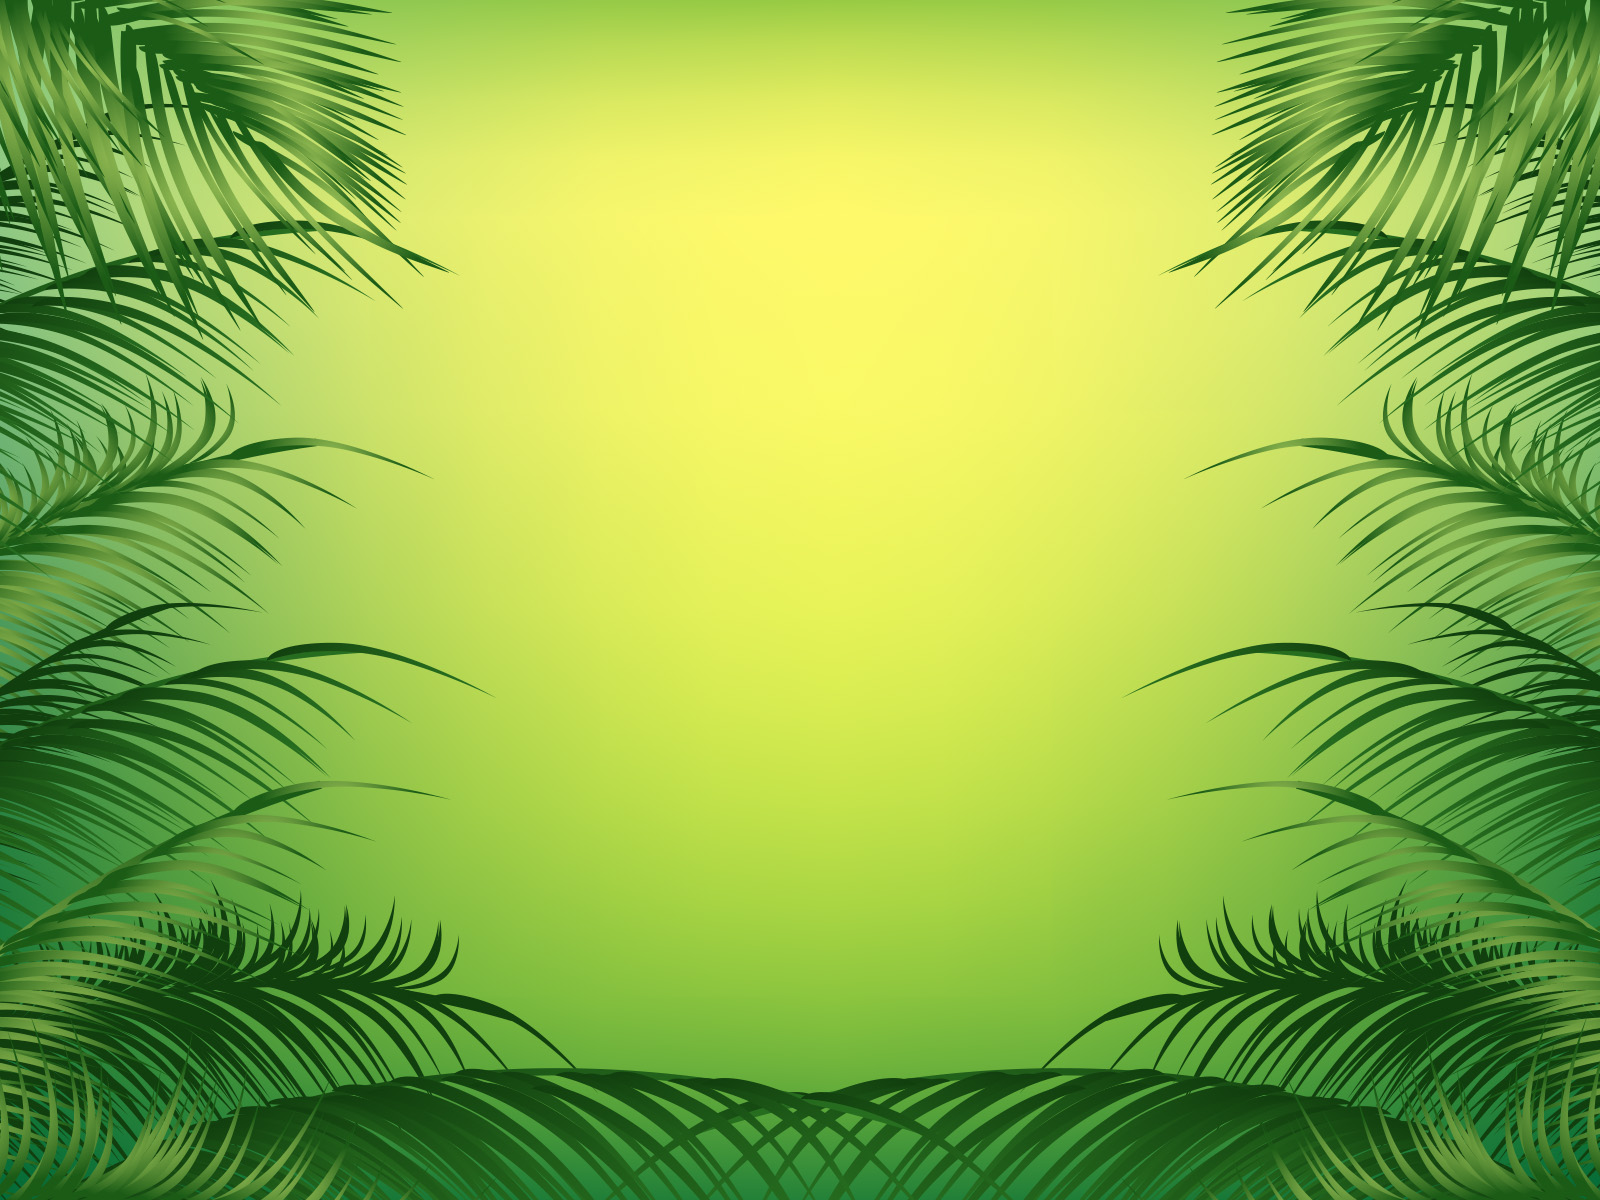 Palm frame backgrounds for powerpoint templates ppt backgrounds toneelgroepblik Image collections